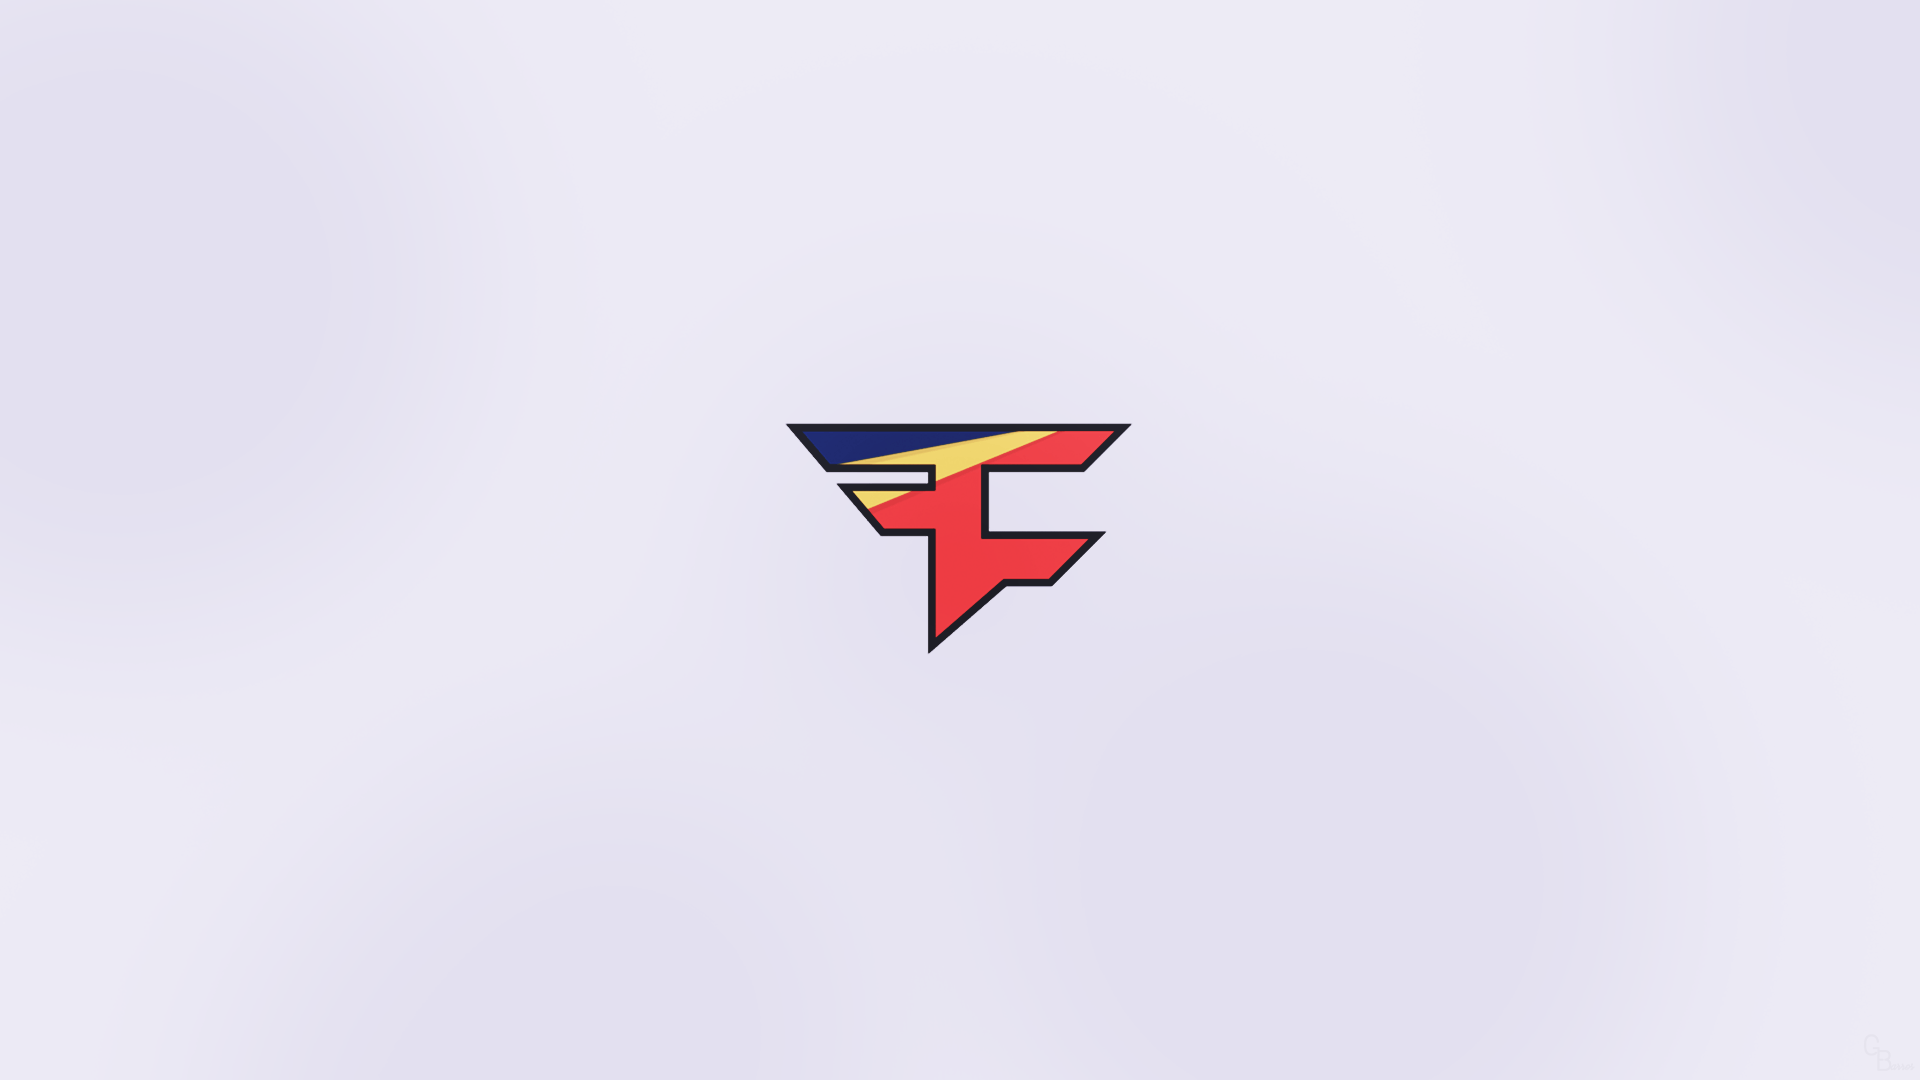 FAZE search results